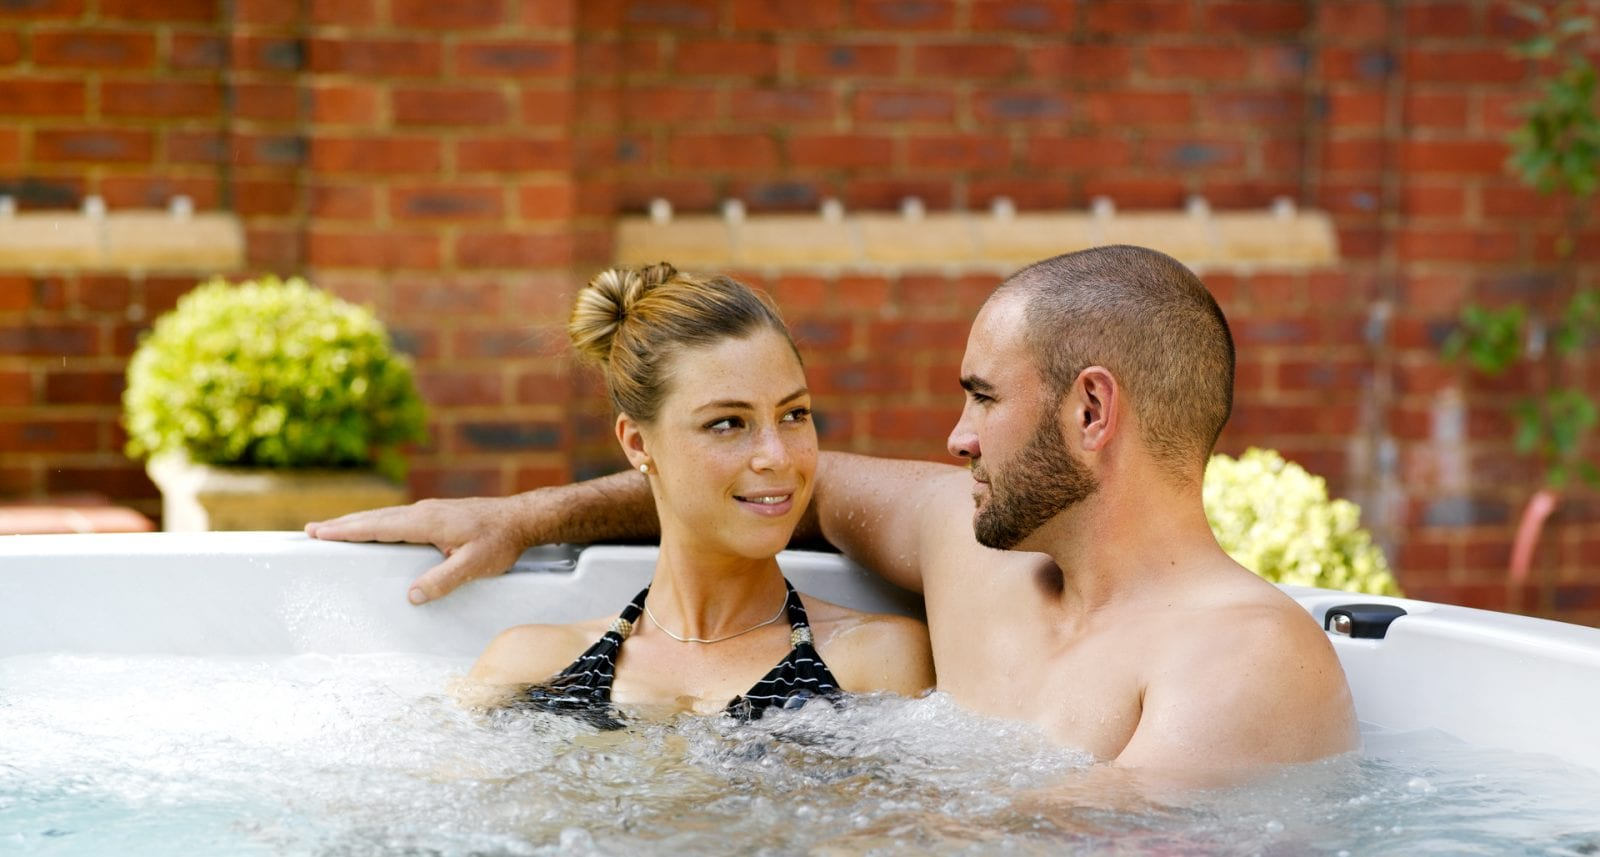 """<a href=""""https://justspas.com.au/guaranteed-methods-that-will-fix-your-cloudy-spa-water/"""">Guaranteed Methods That Will Fix Your Cloudy Spa Water</a>"""